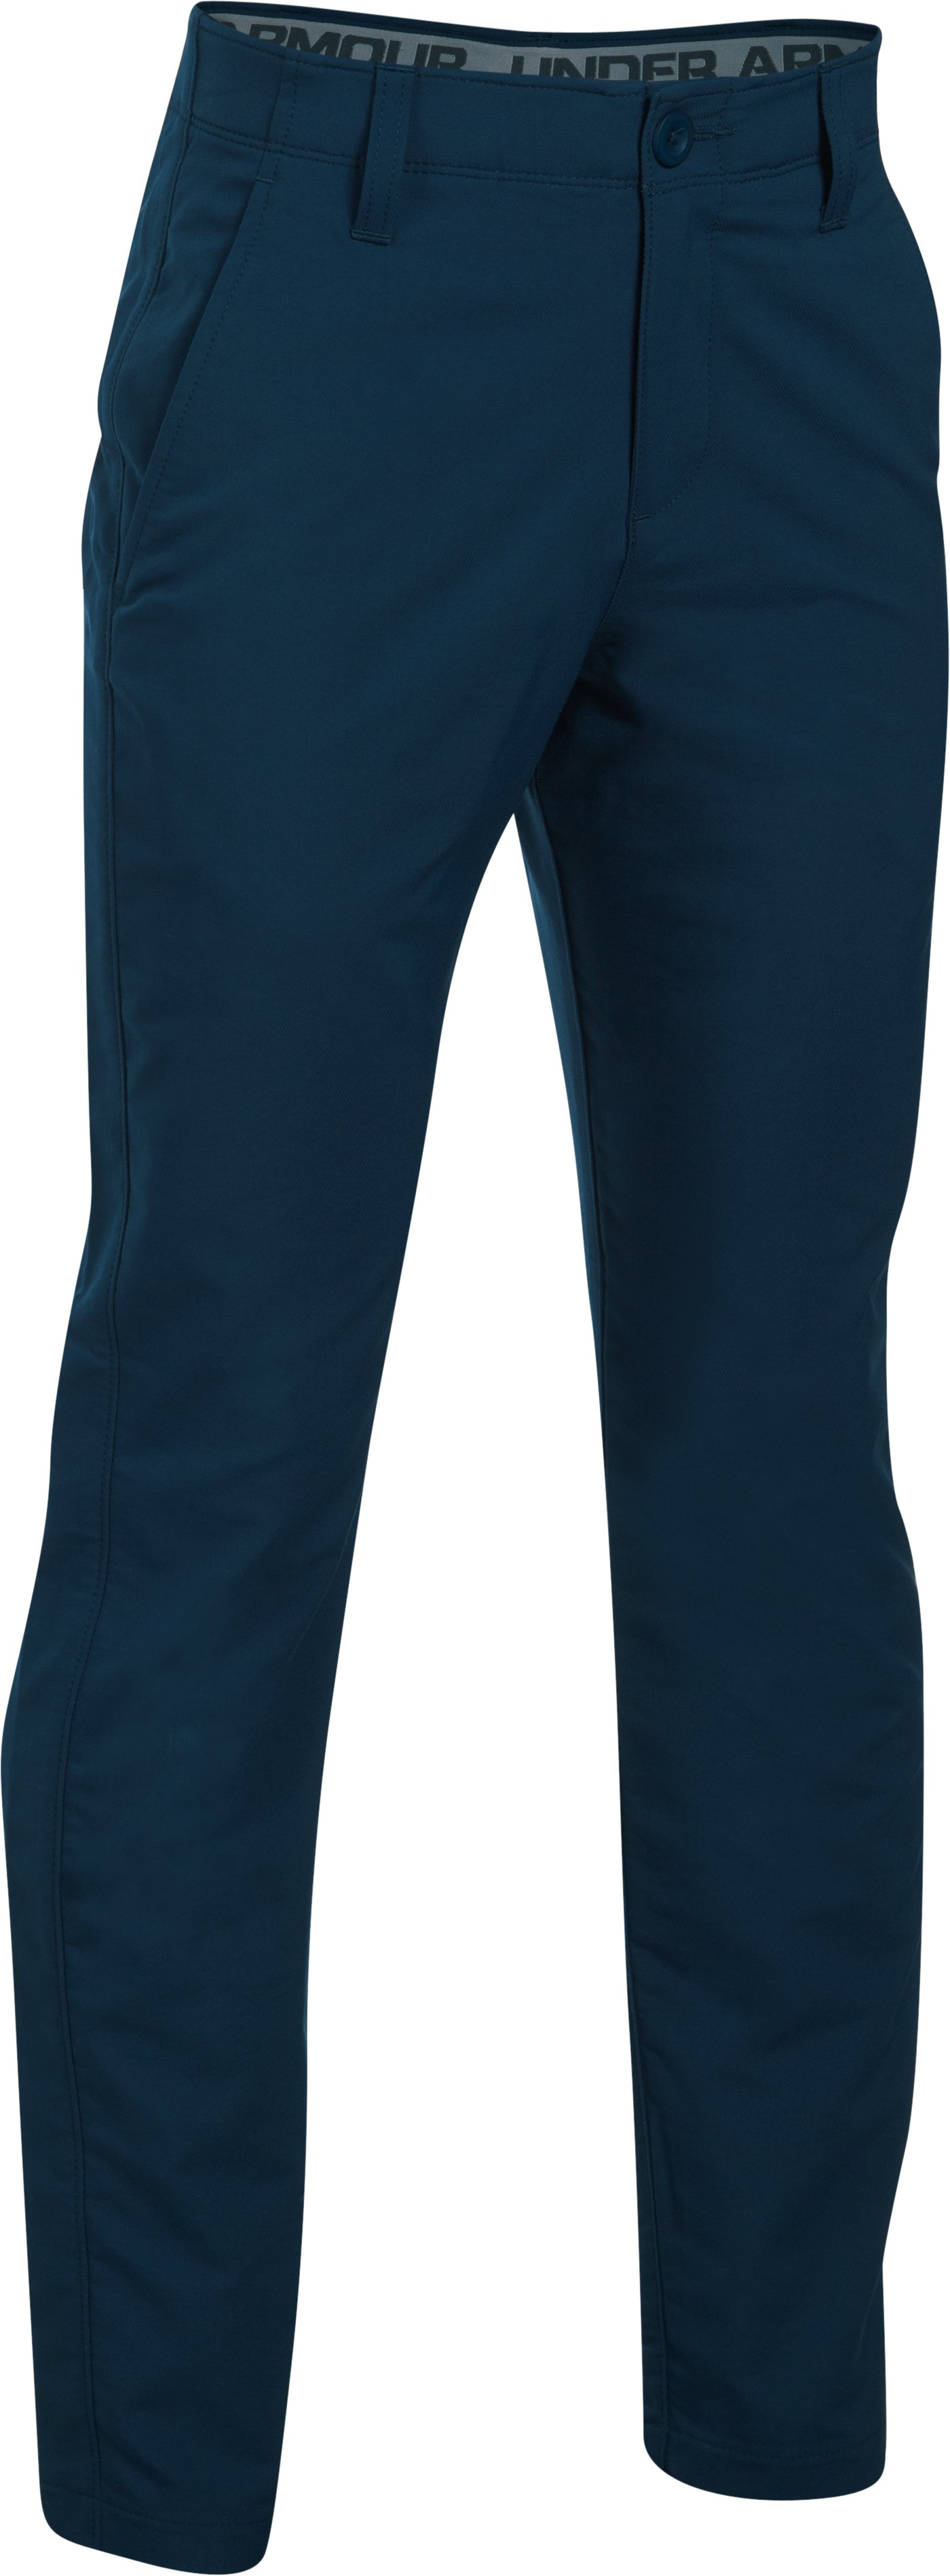 Boys' UA Match Play Pants, Academy, undefined